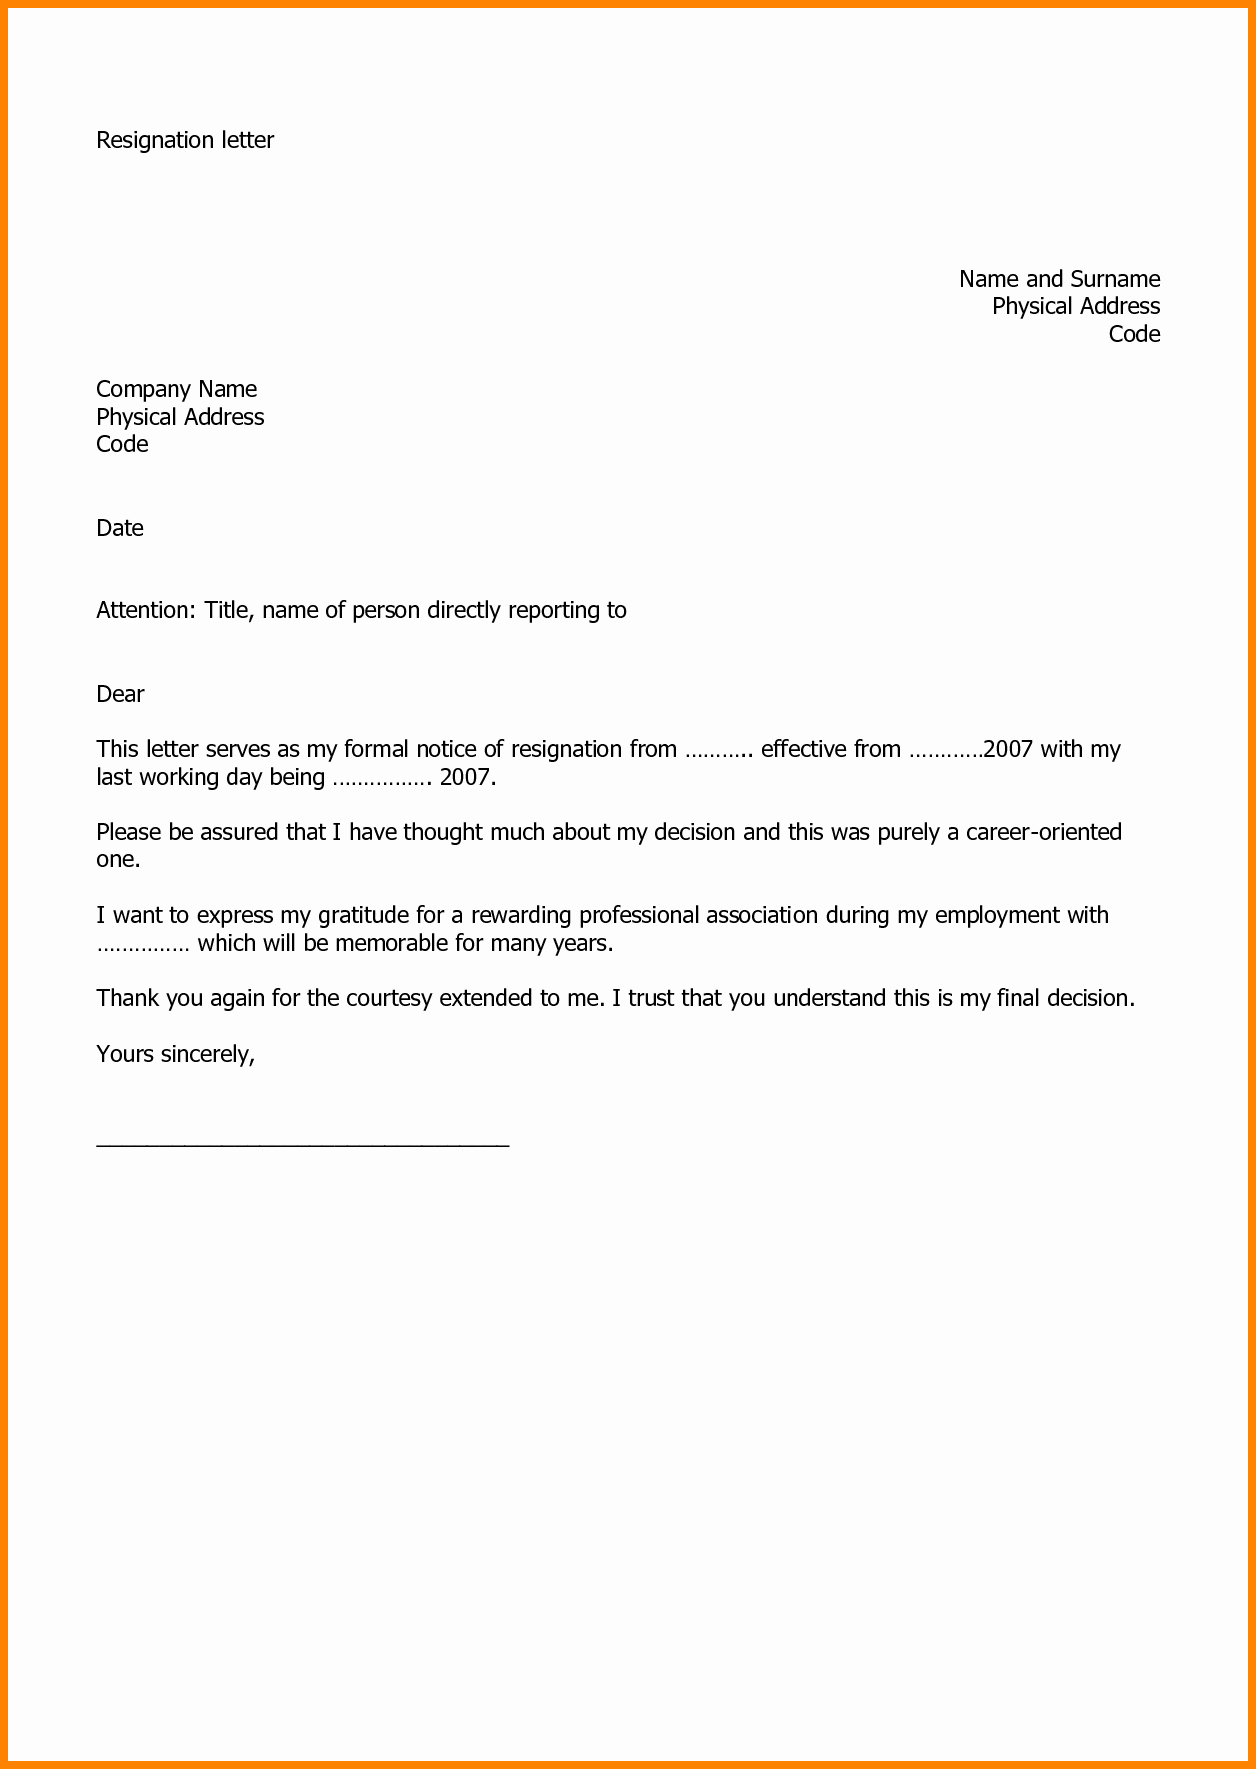 Letter Of Resignation From Job Unique Pin by Mike Marischler On Health